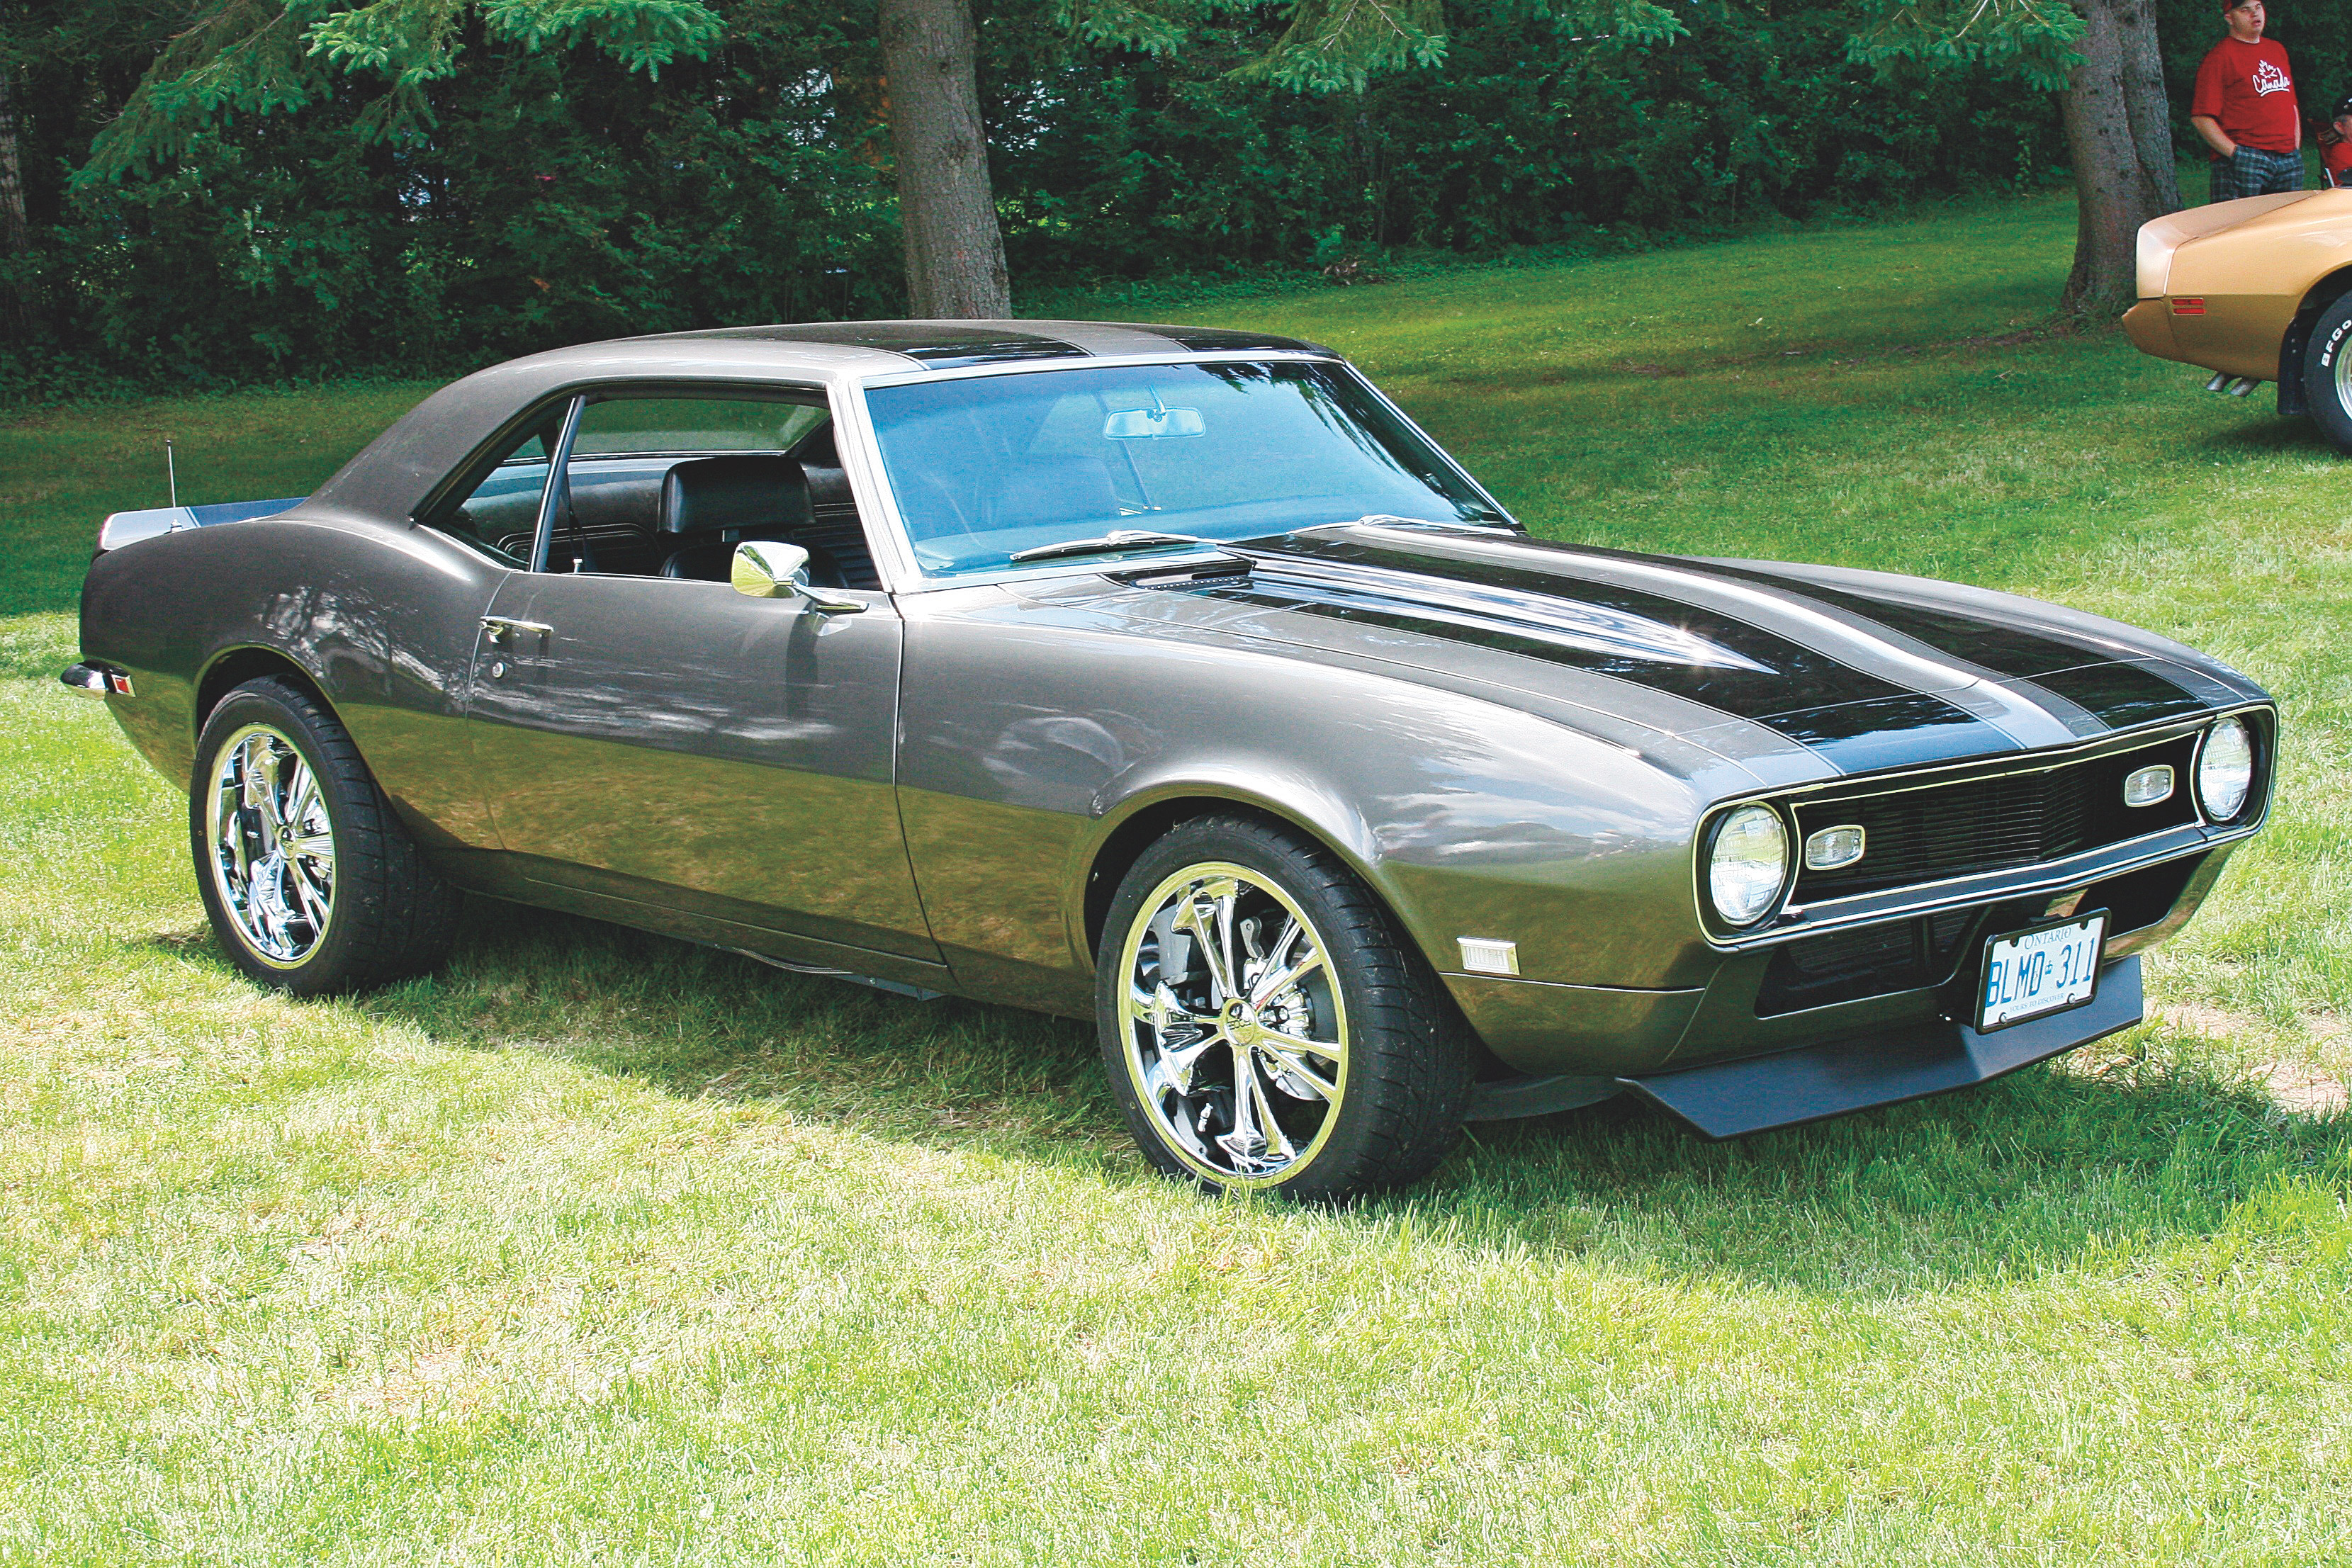 Chevrolet Camaro 1968 photo - 1